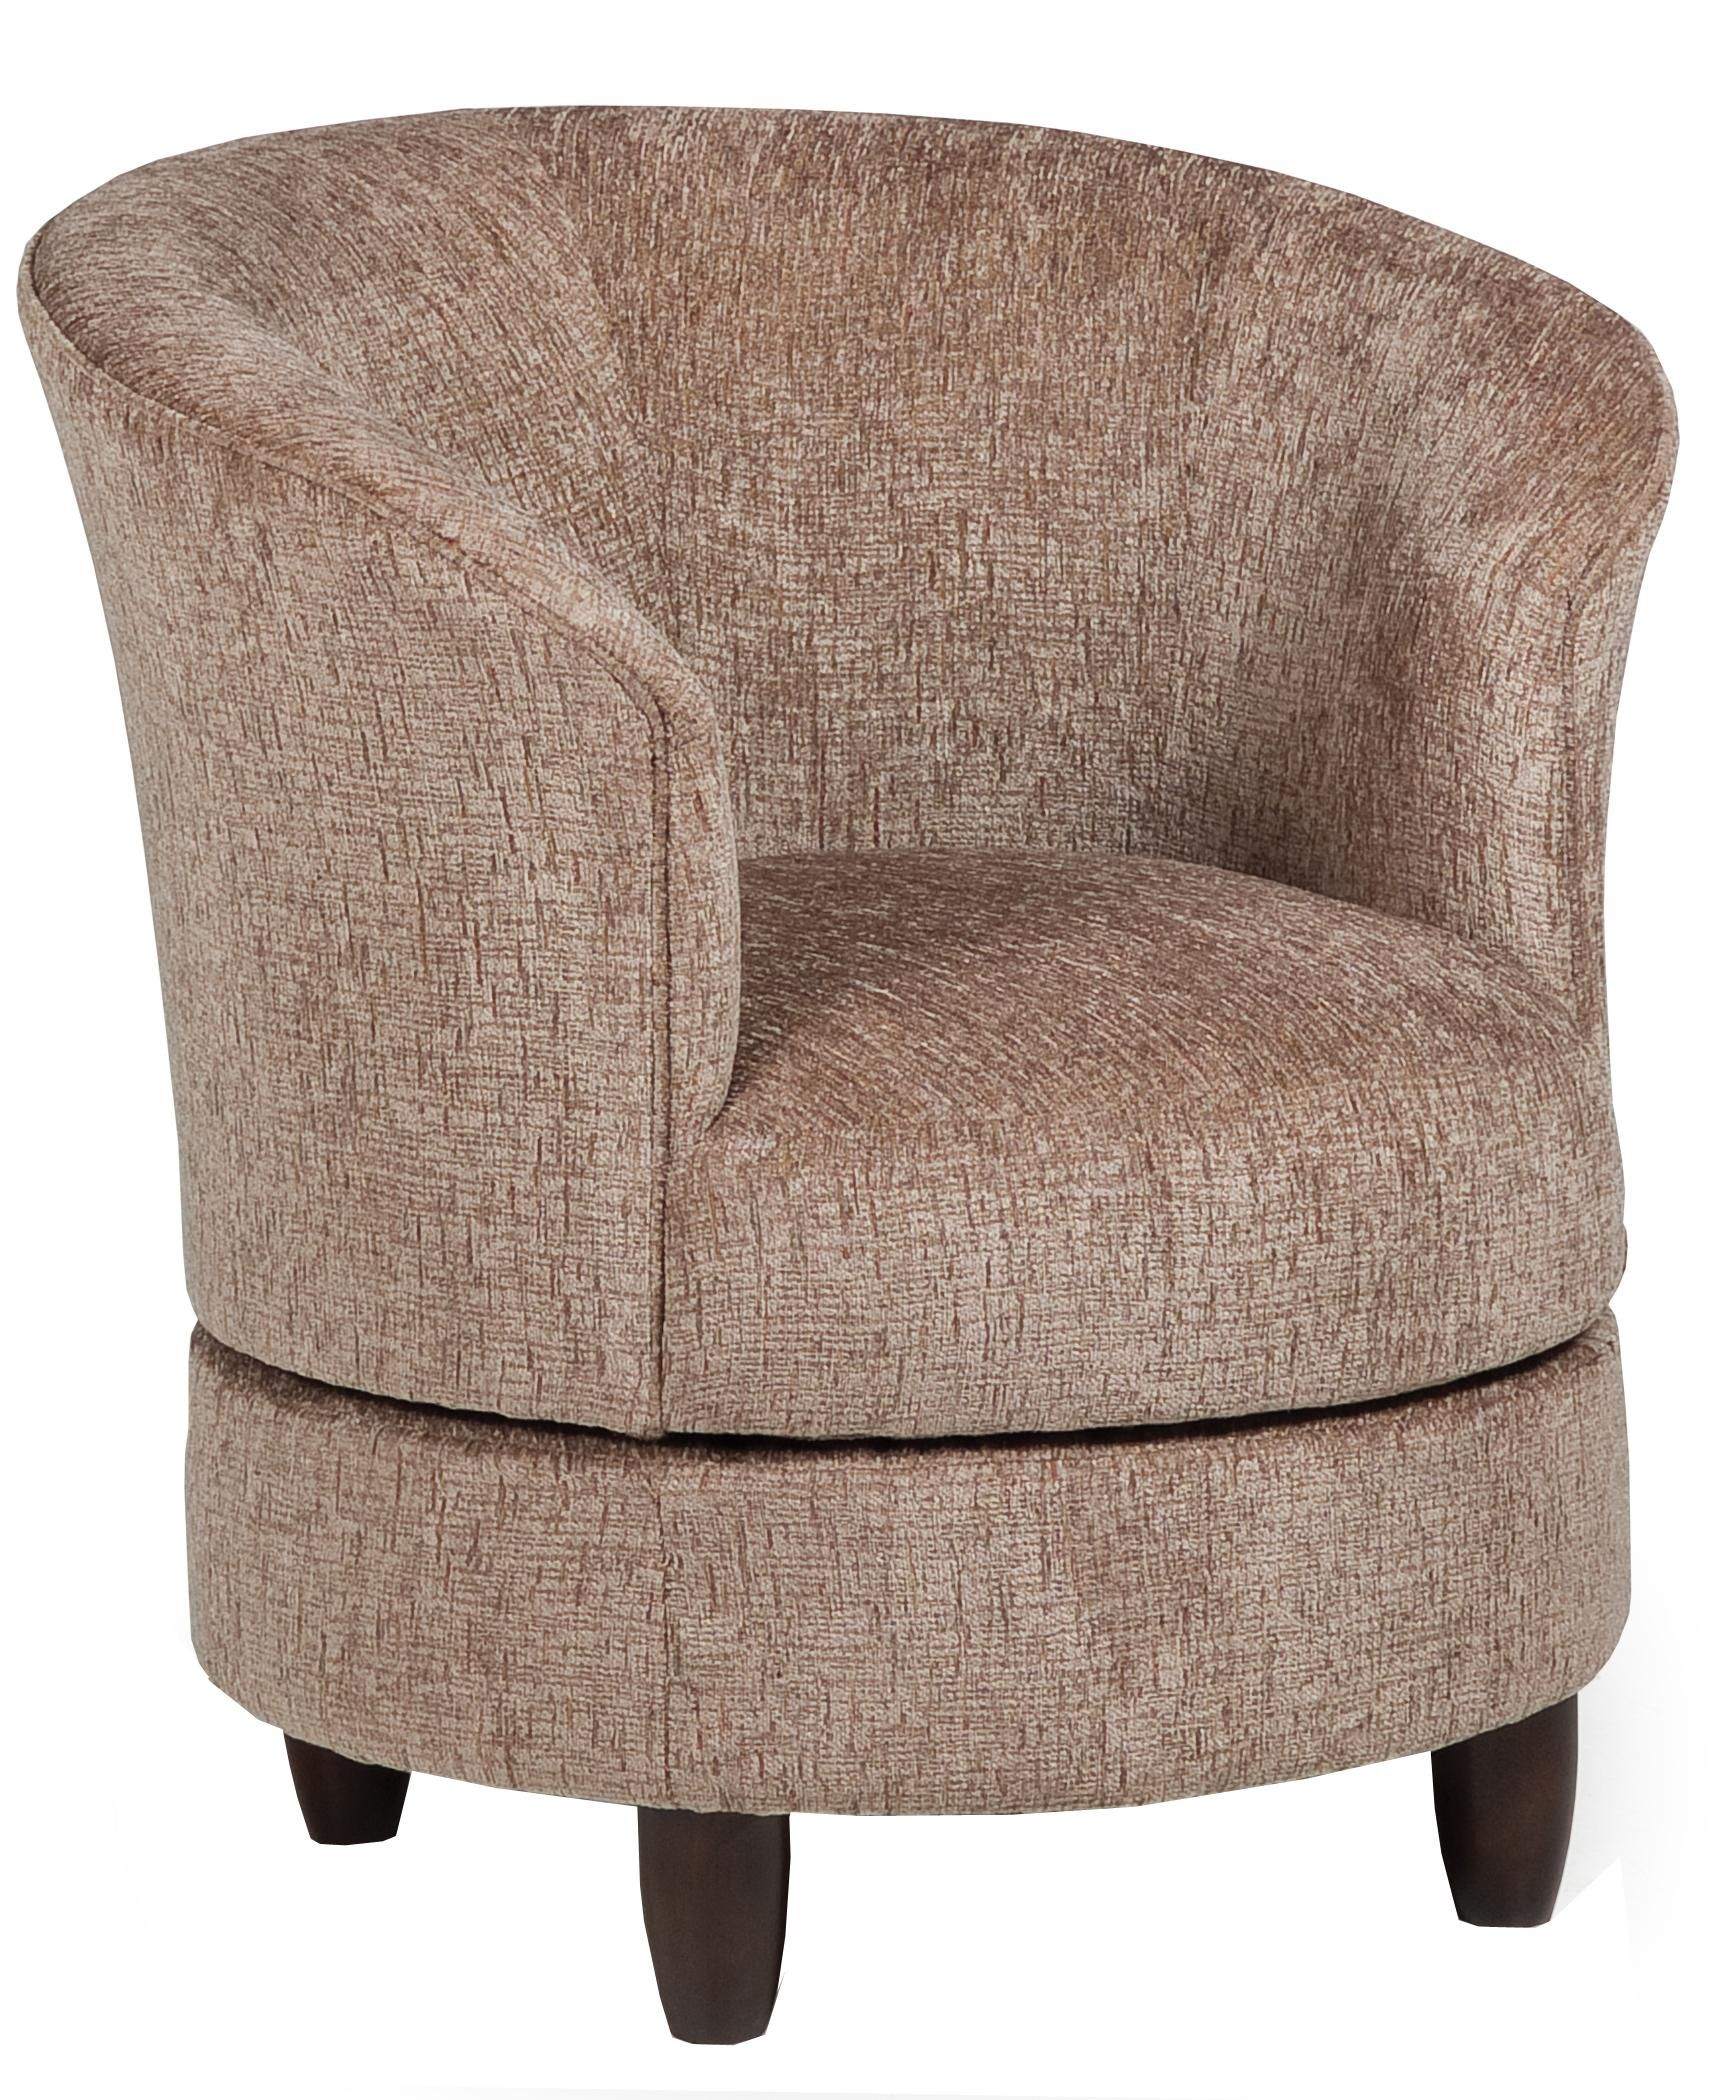 Accent Chairs Swivel Barrel Chairbest Home Furnishings | Living Within Harbor Grey Swivel Accent Chairs (View 2 of 25)